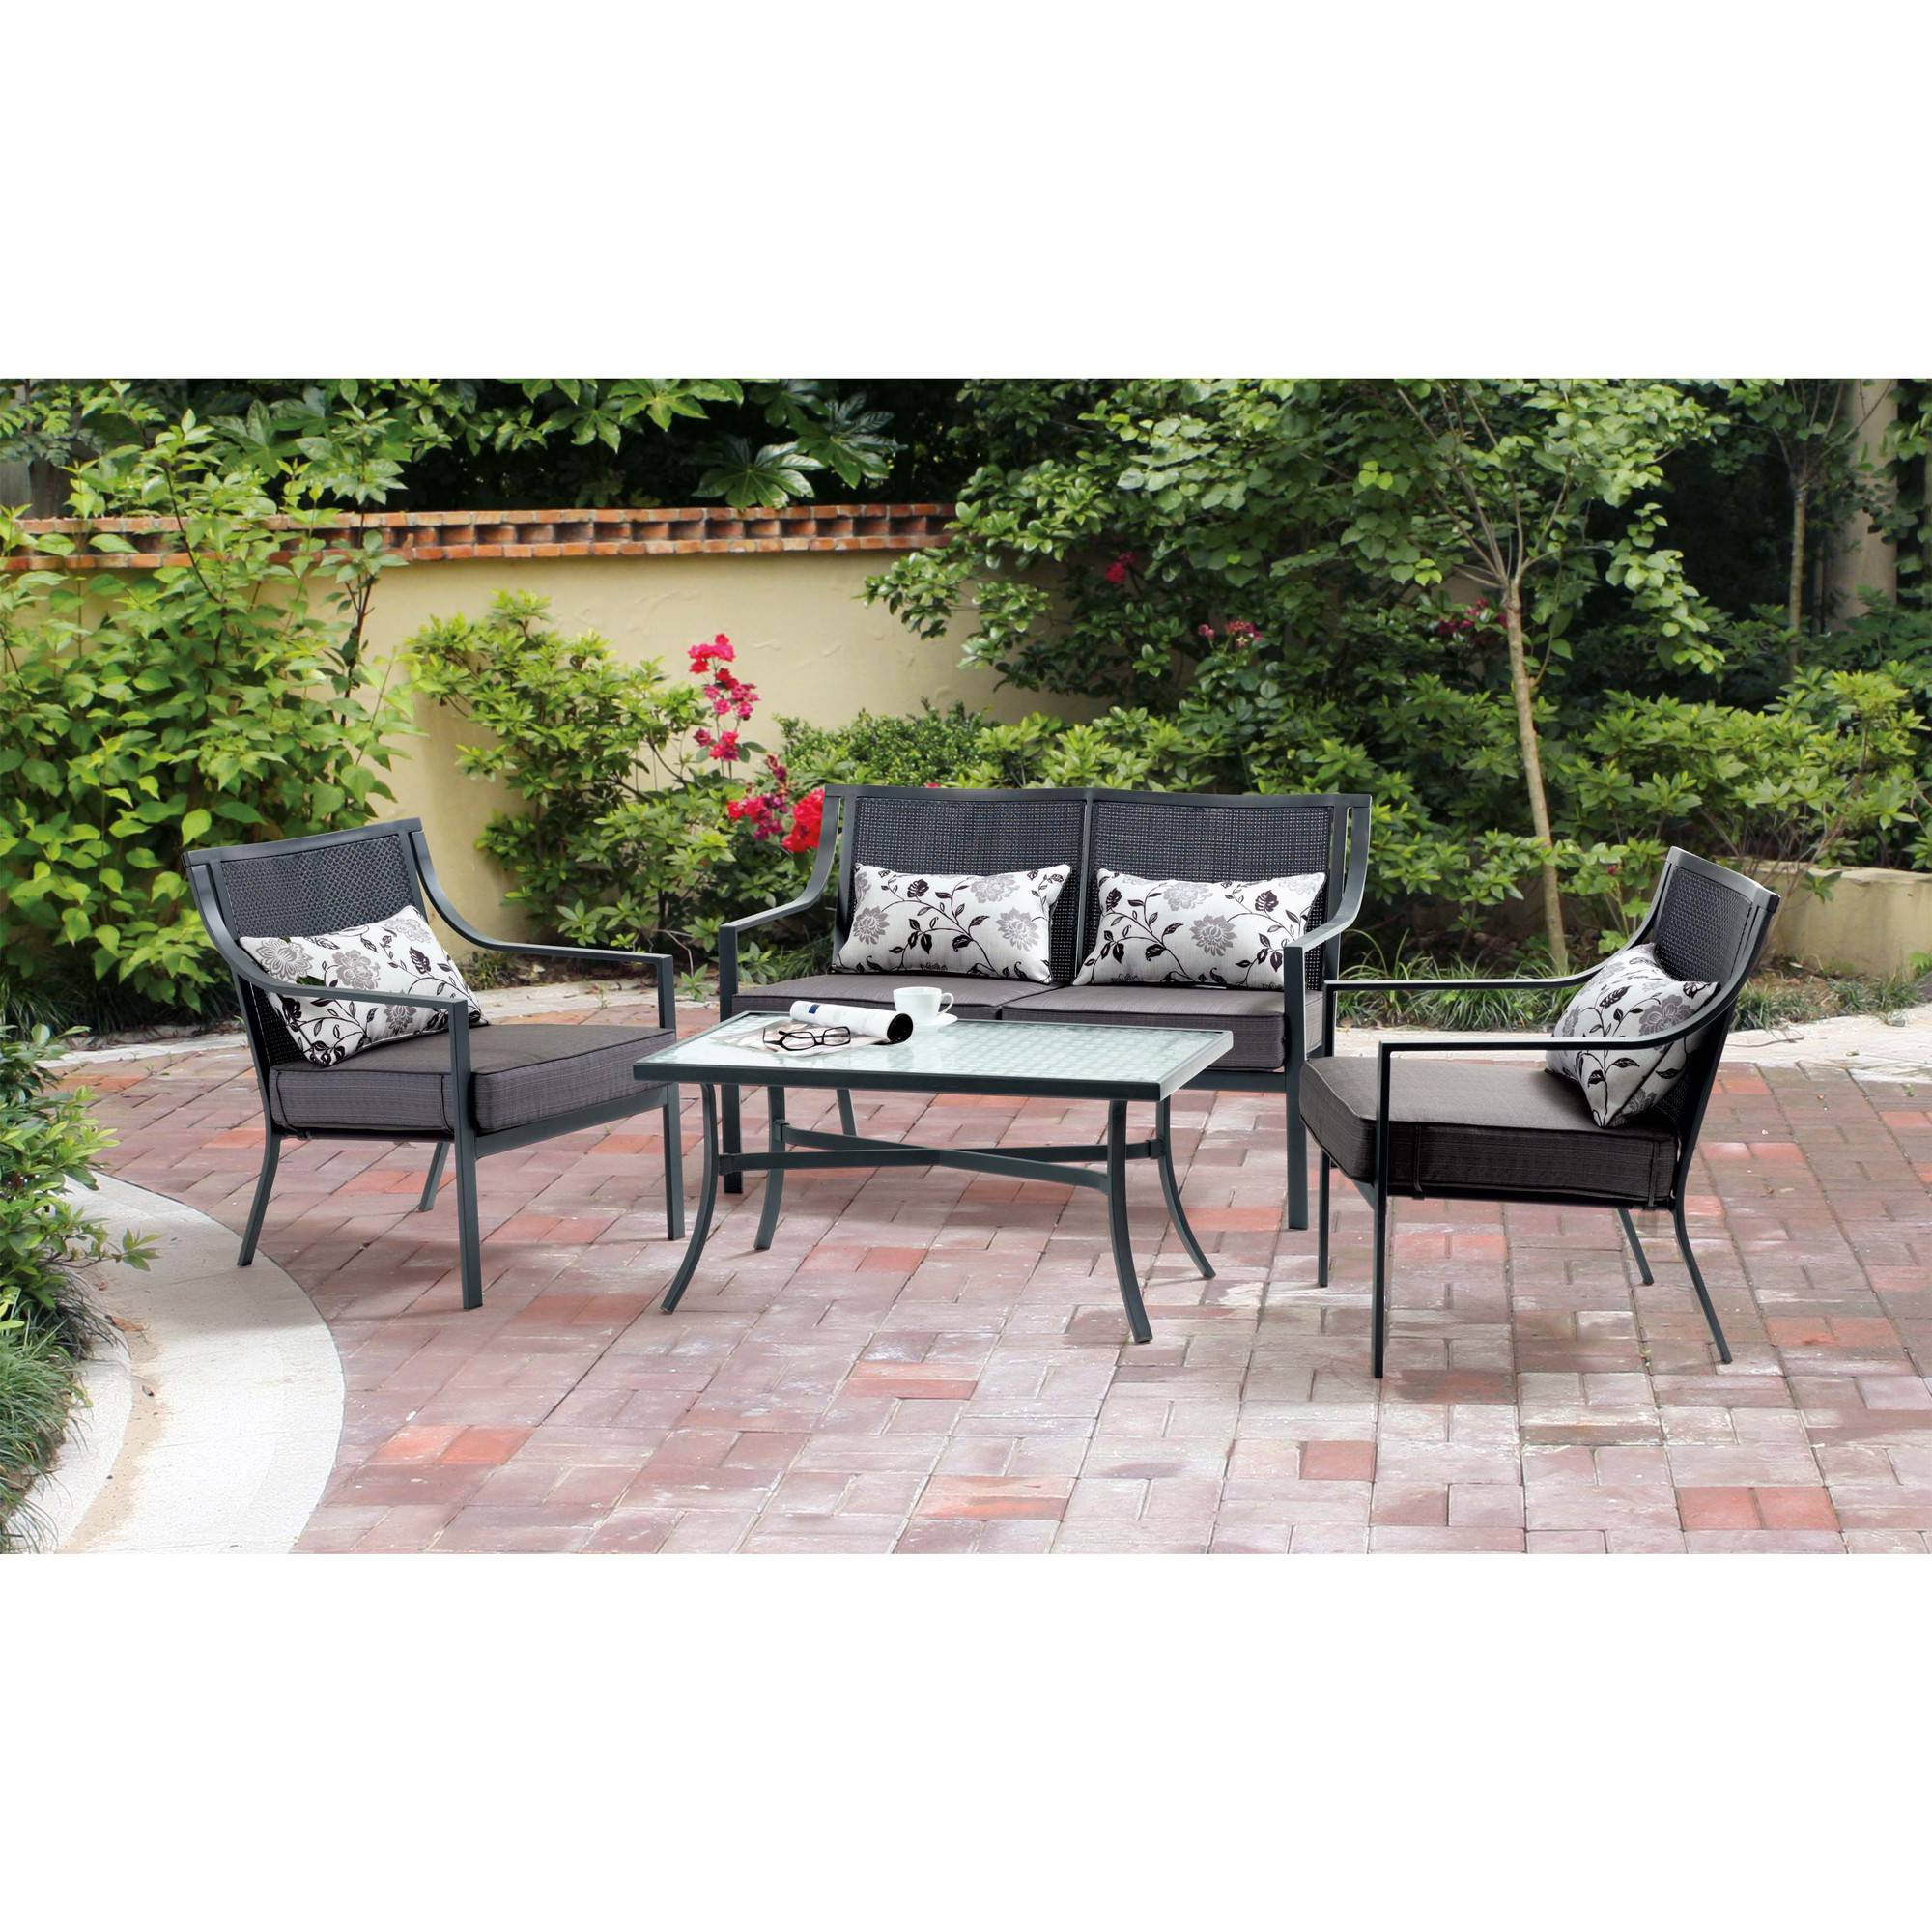 Mainstays Alexandra Square 4 Piece Patio Conversation Set Grey With